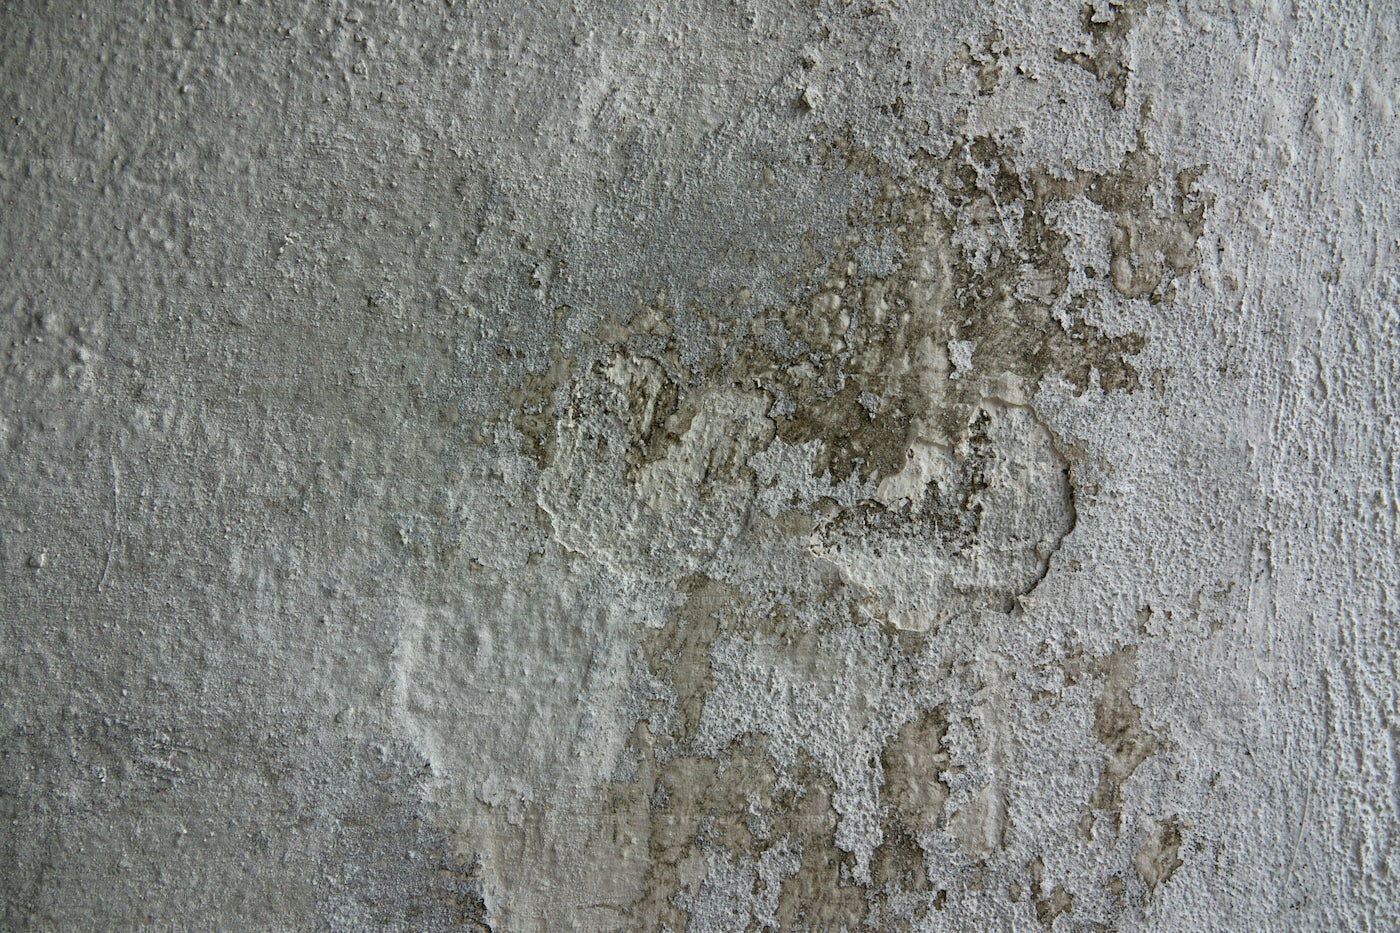 Texture Of A Ragged White Wall: Stock Photos